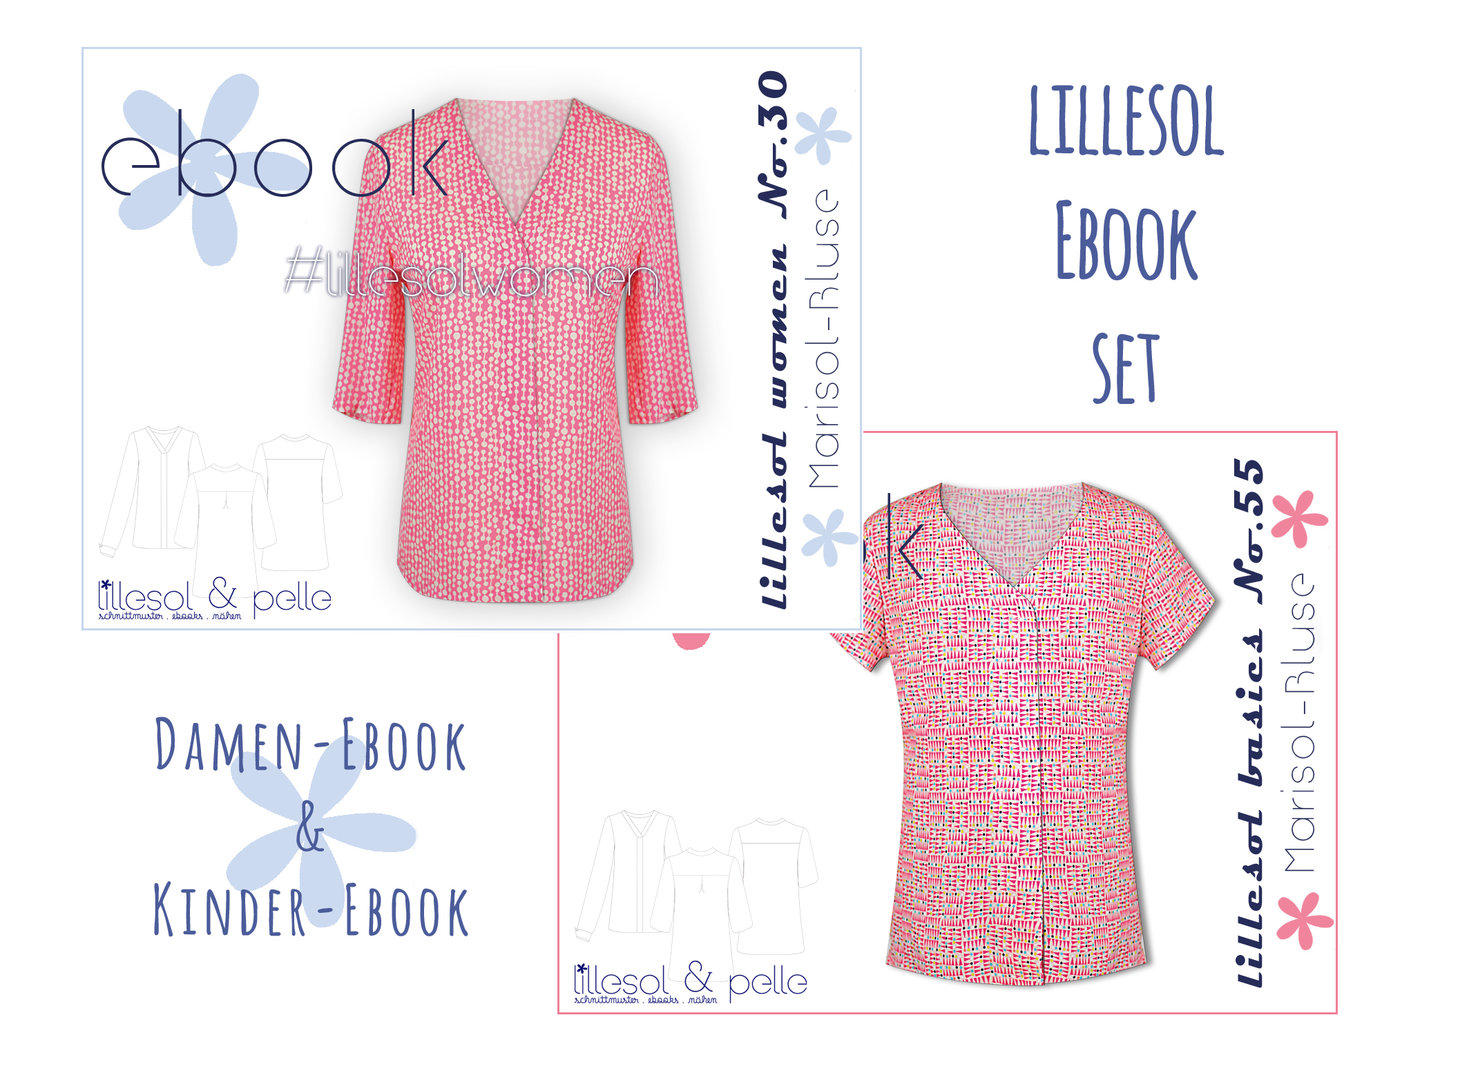 lillesol ebook set basics No.55 und women No.30  * mit Video-Nähanleitung *